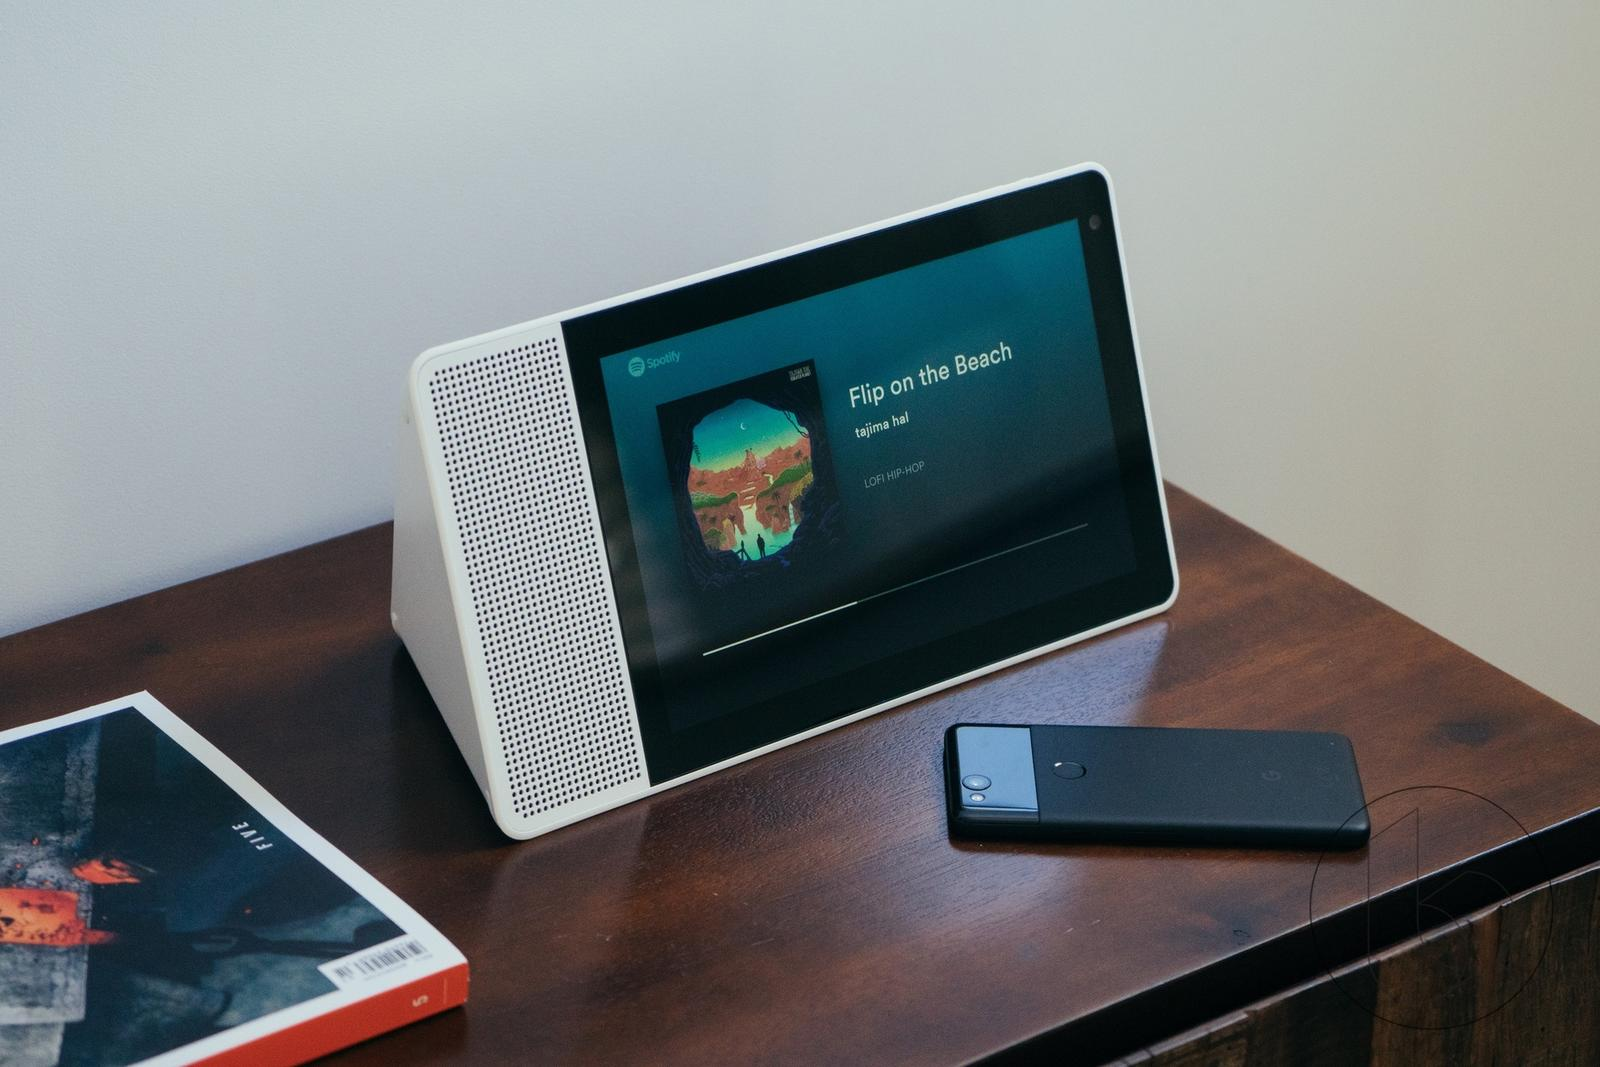 Lenovo Smart Display review: Every Living Room Should Have